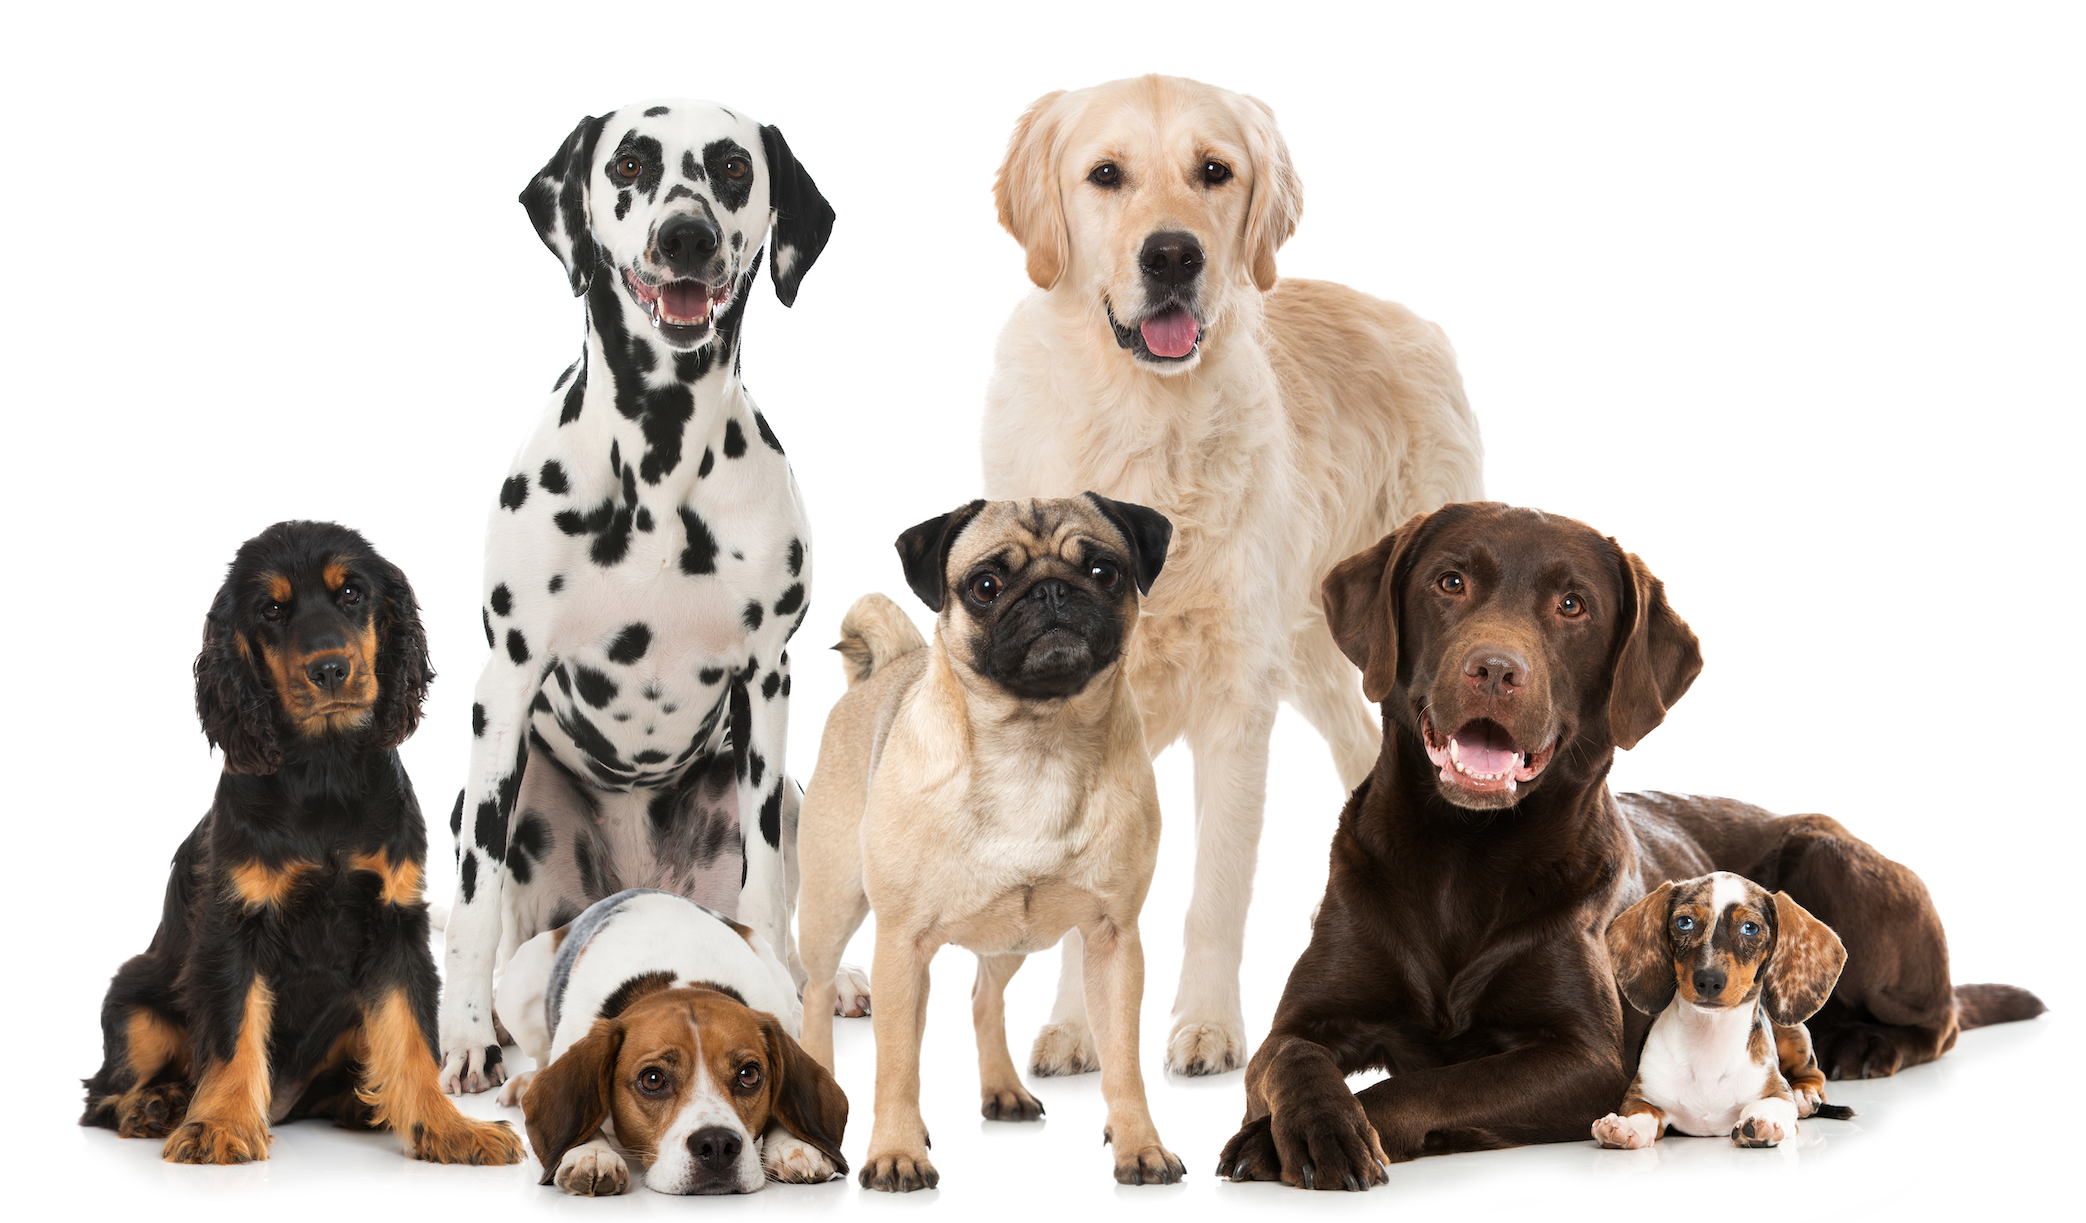 Can you name these dog breeds?